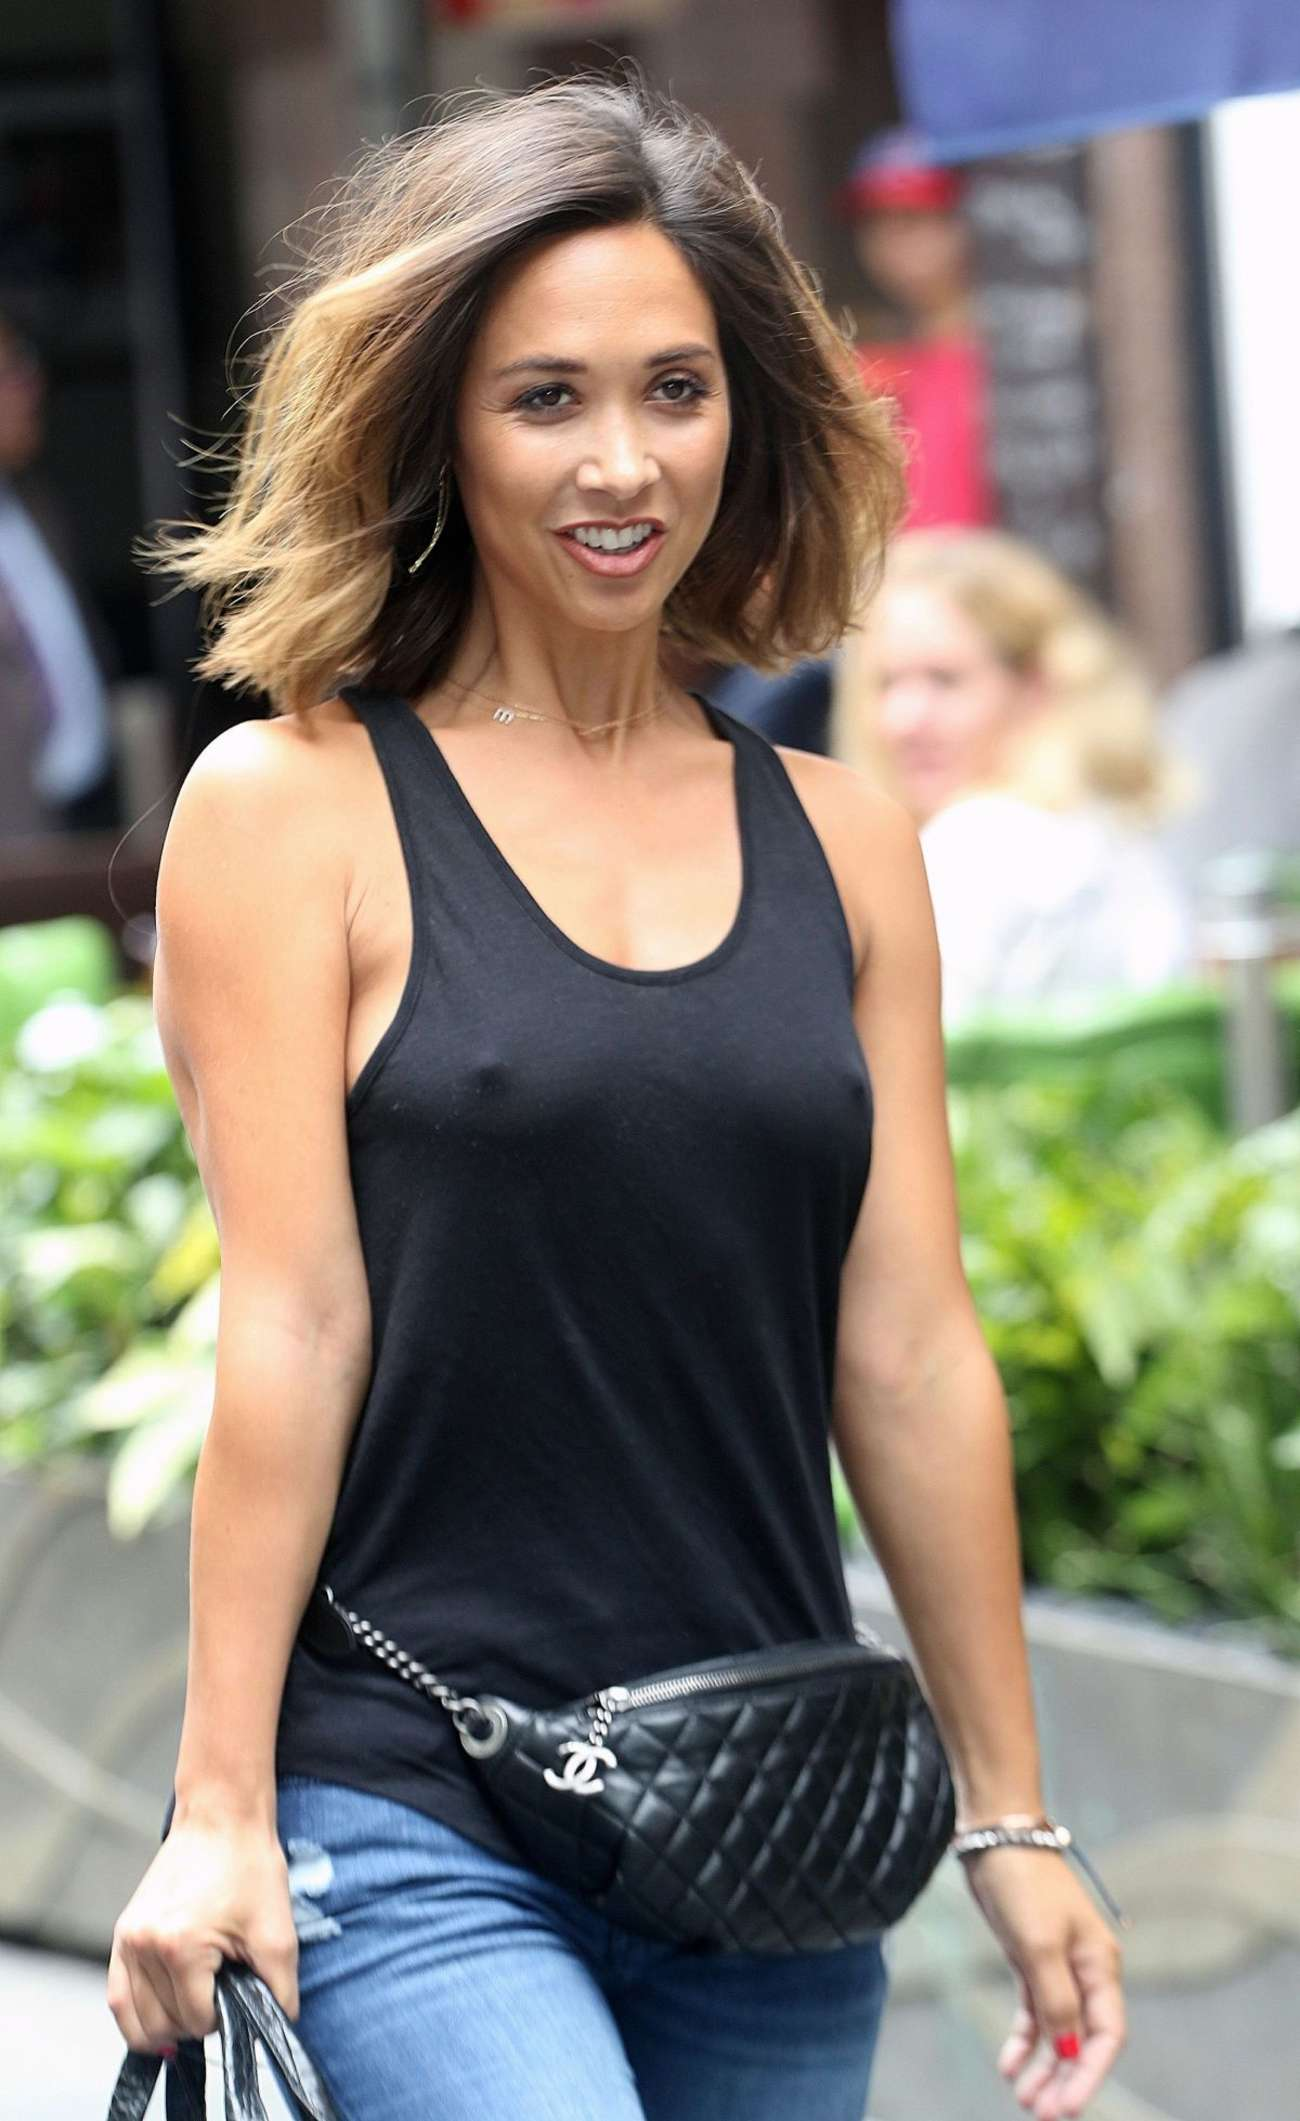 Girls Without Clothes Wallpaper Myleene Klass In Jeans 07 Gotceleb